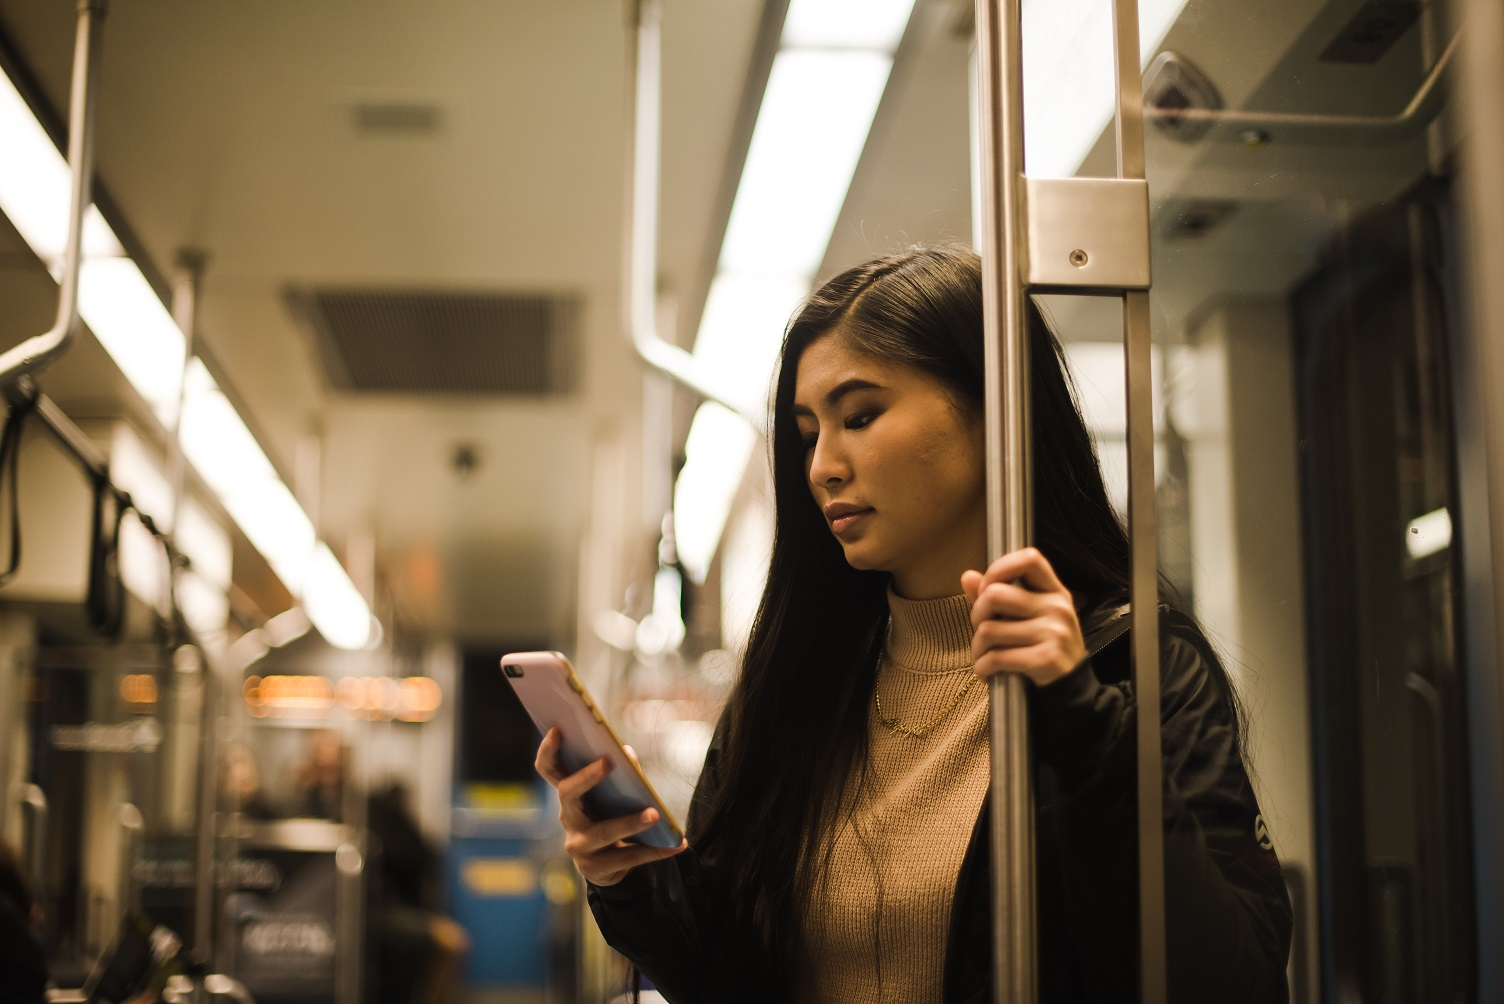 woman holding phone navigating through life